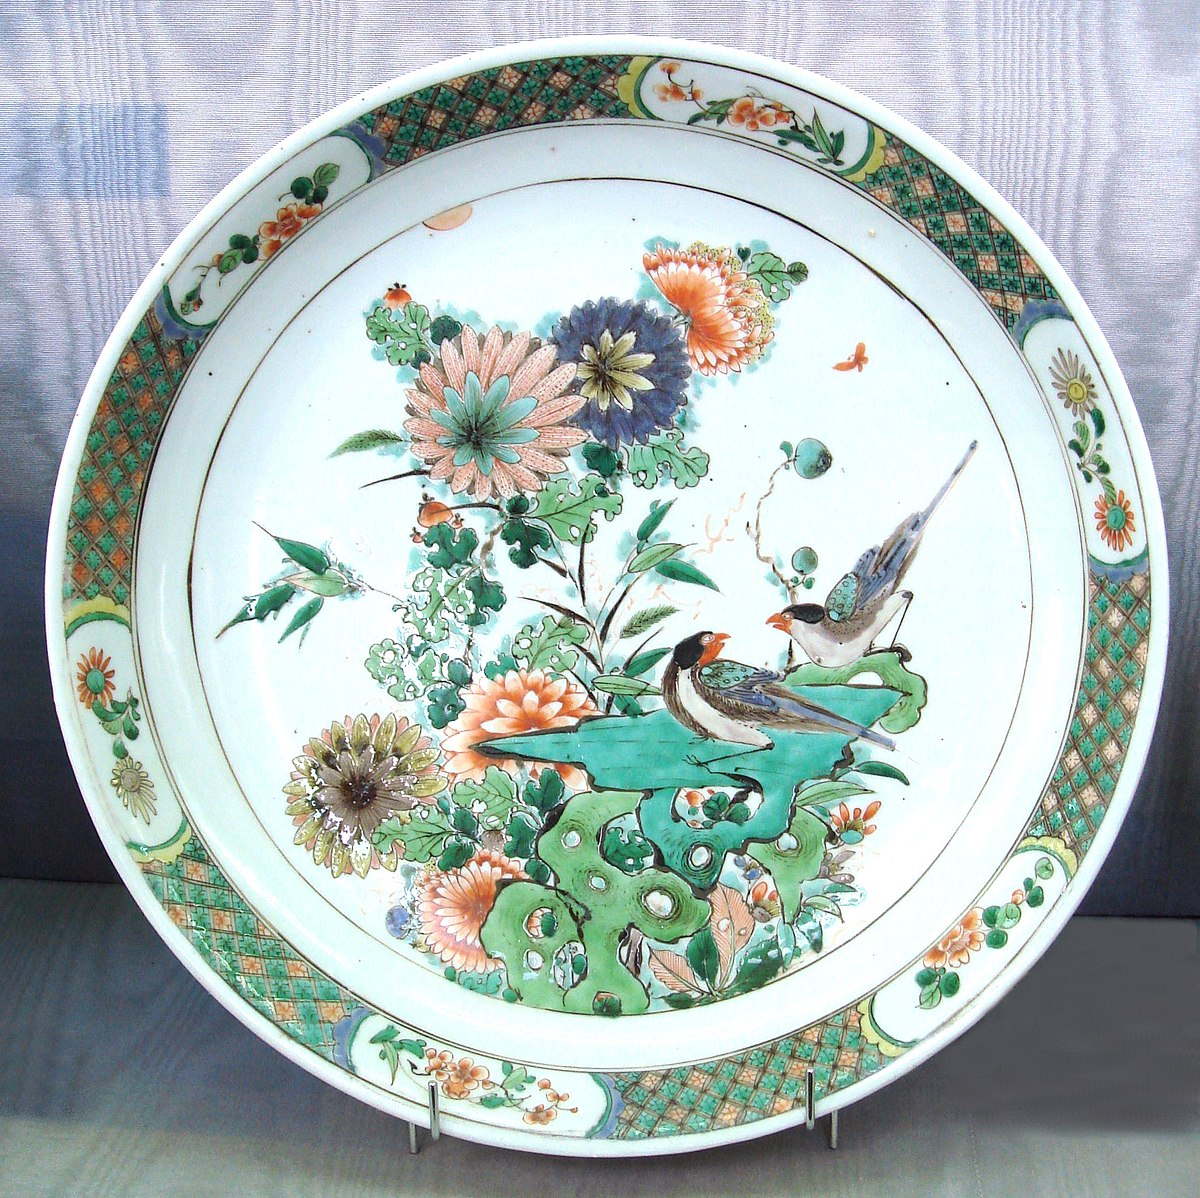 China painting wikipedia for Ceramic based paint